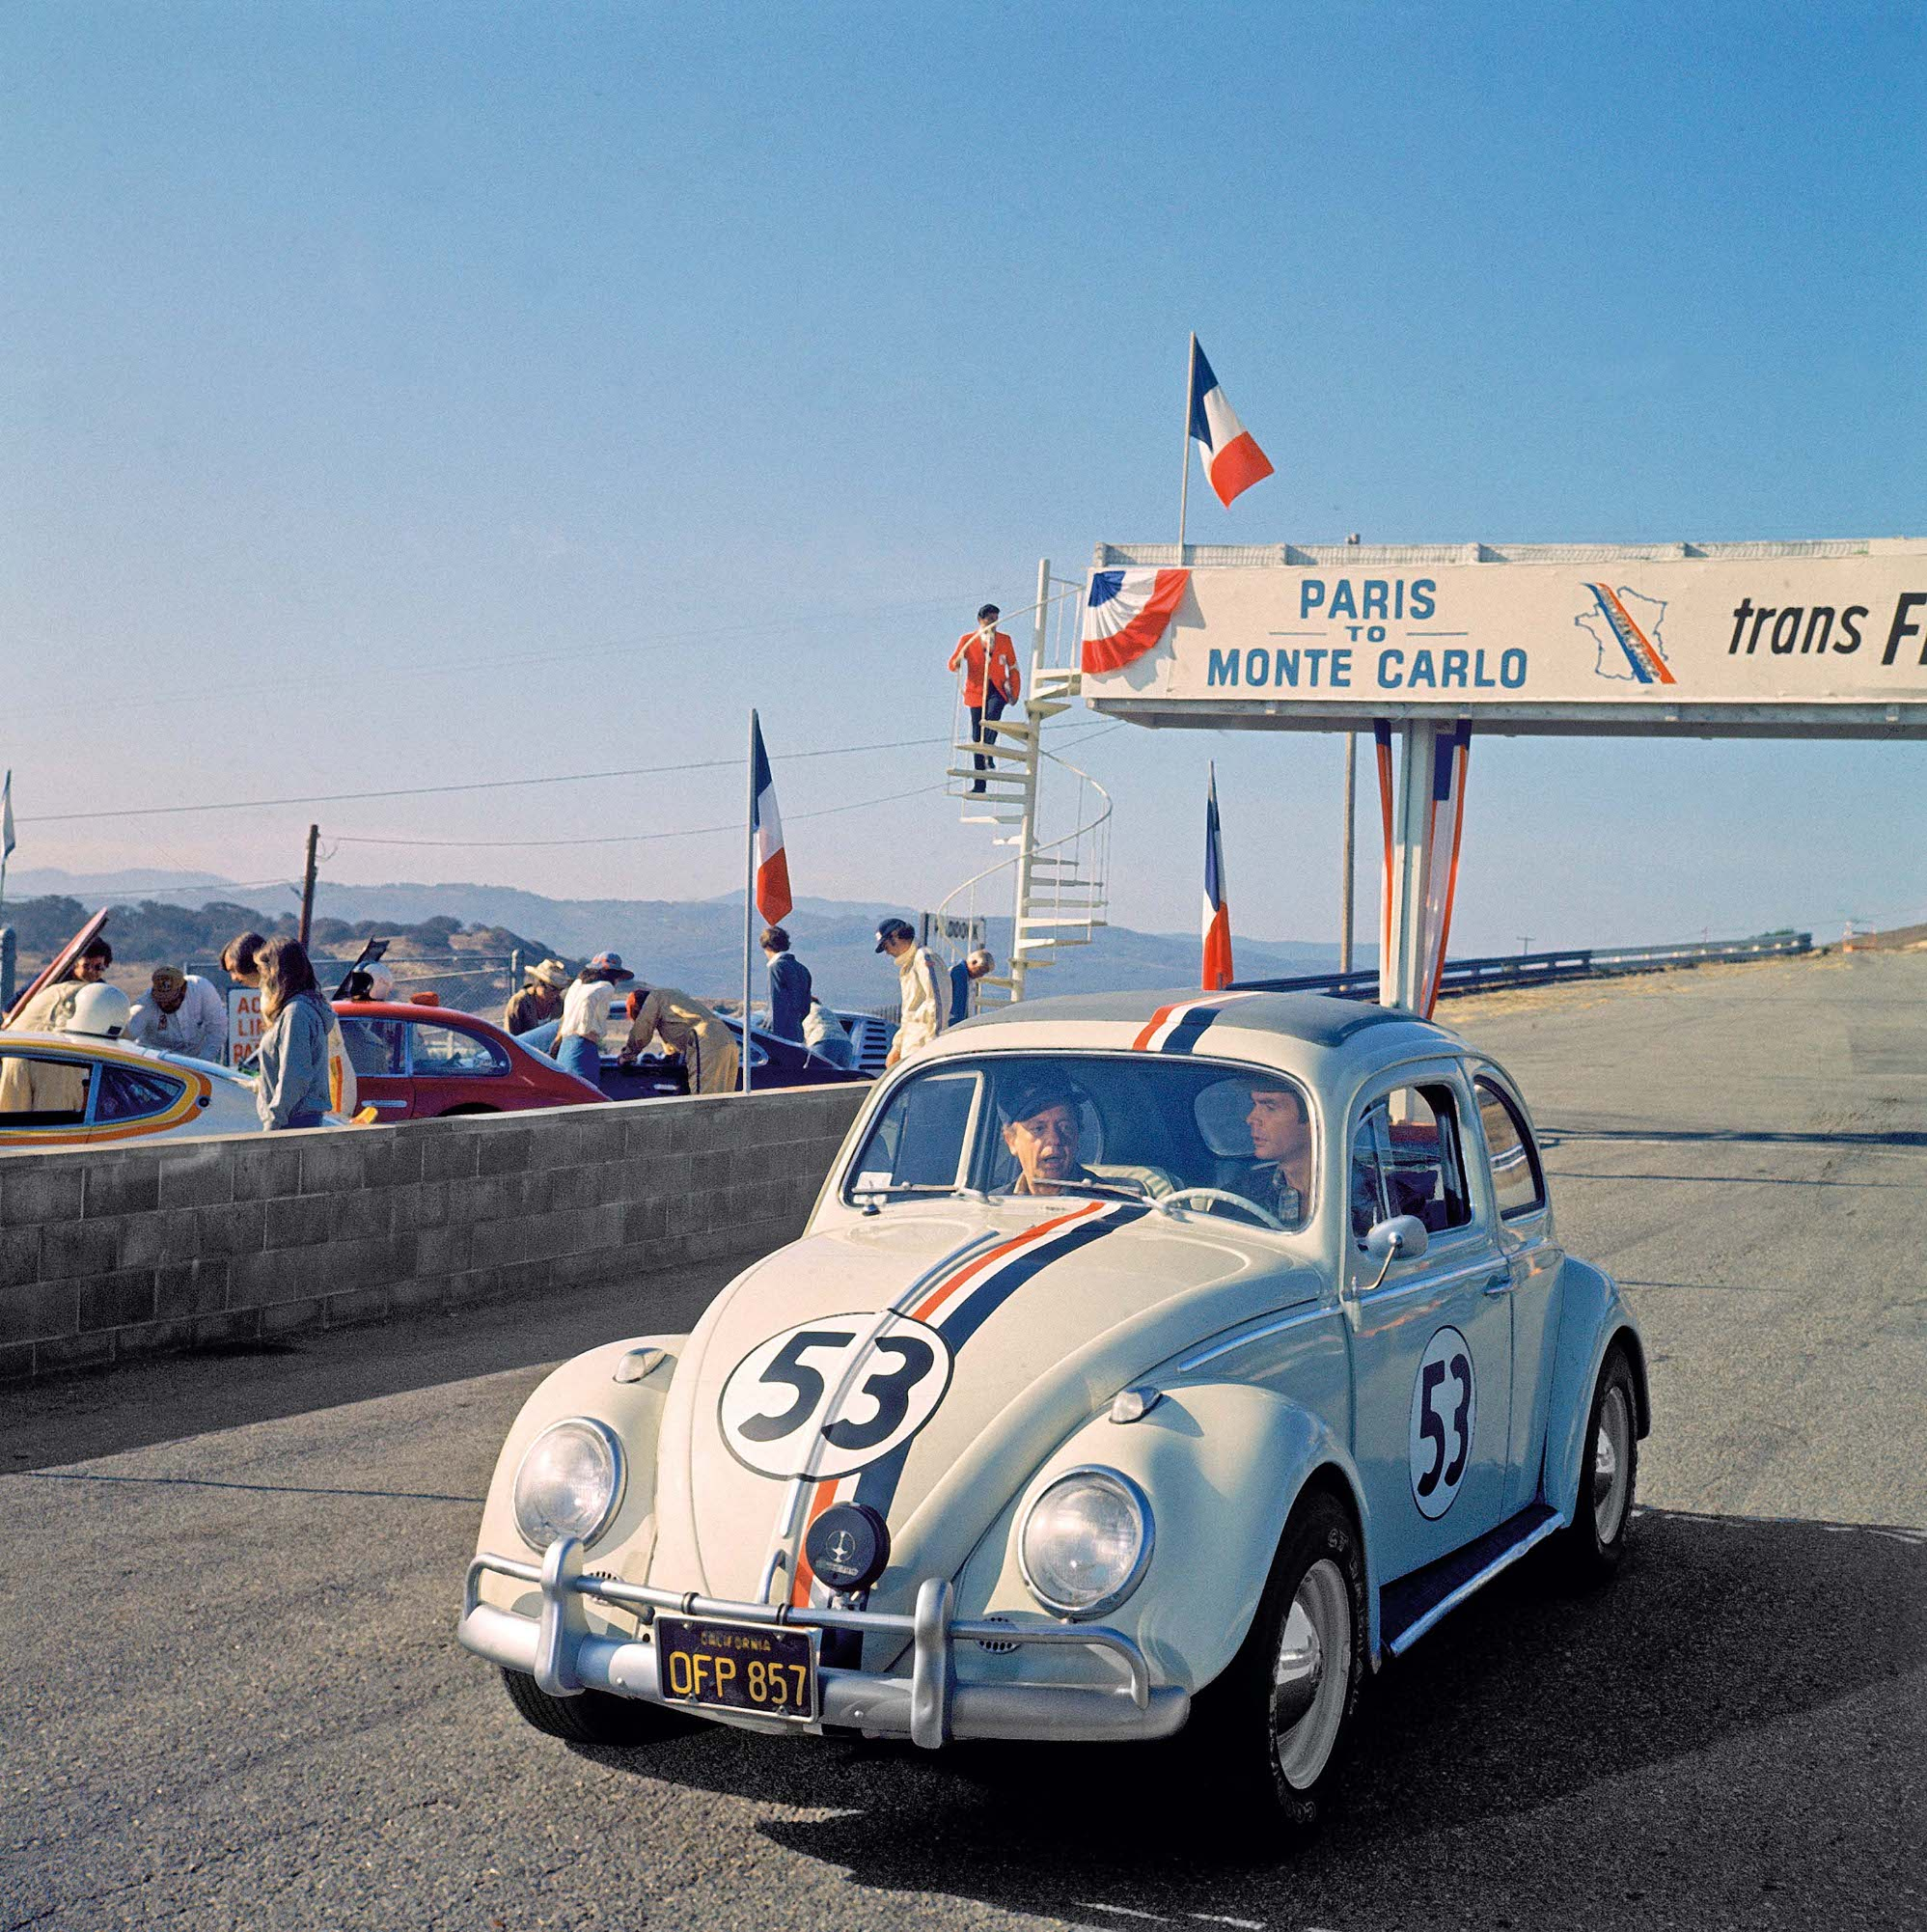 HERBIE GOES TO MONTE CARLO, Don Knotts, Dean Jones, 1977.